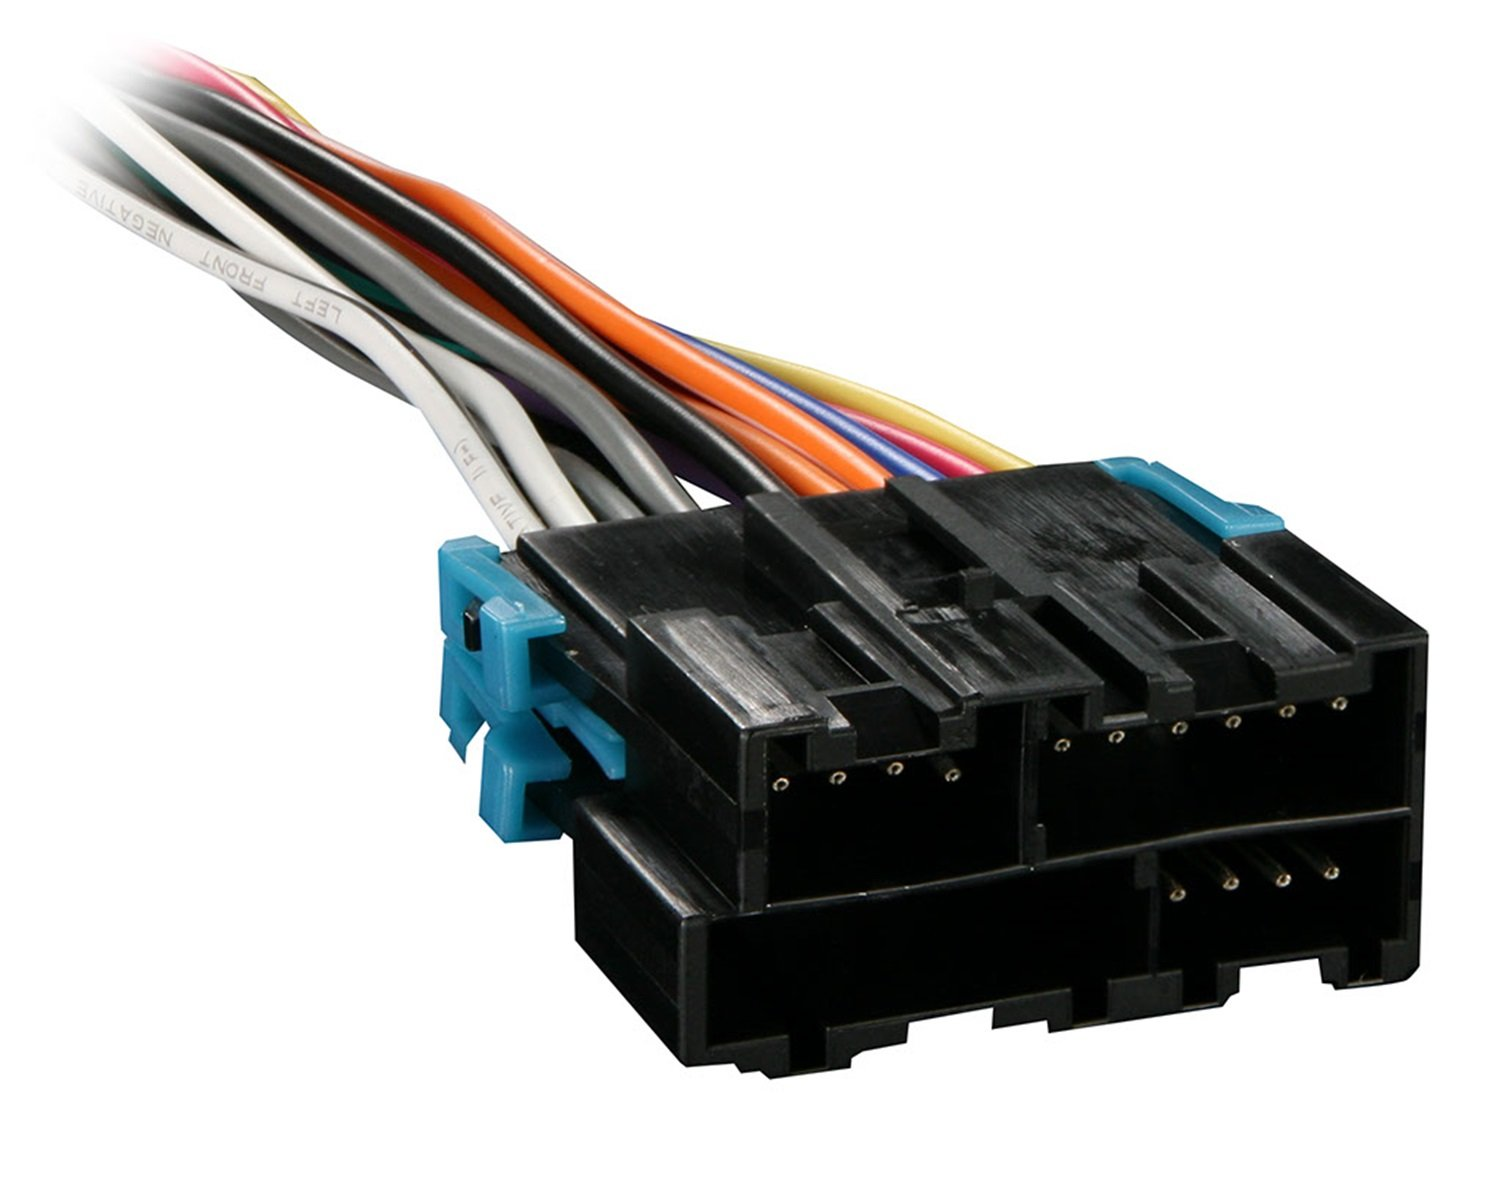 61 CwjZt1hL._SL1500_ radio wiring harnesses amazon com best buy stereo wiring harness at readyjetset.co